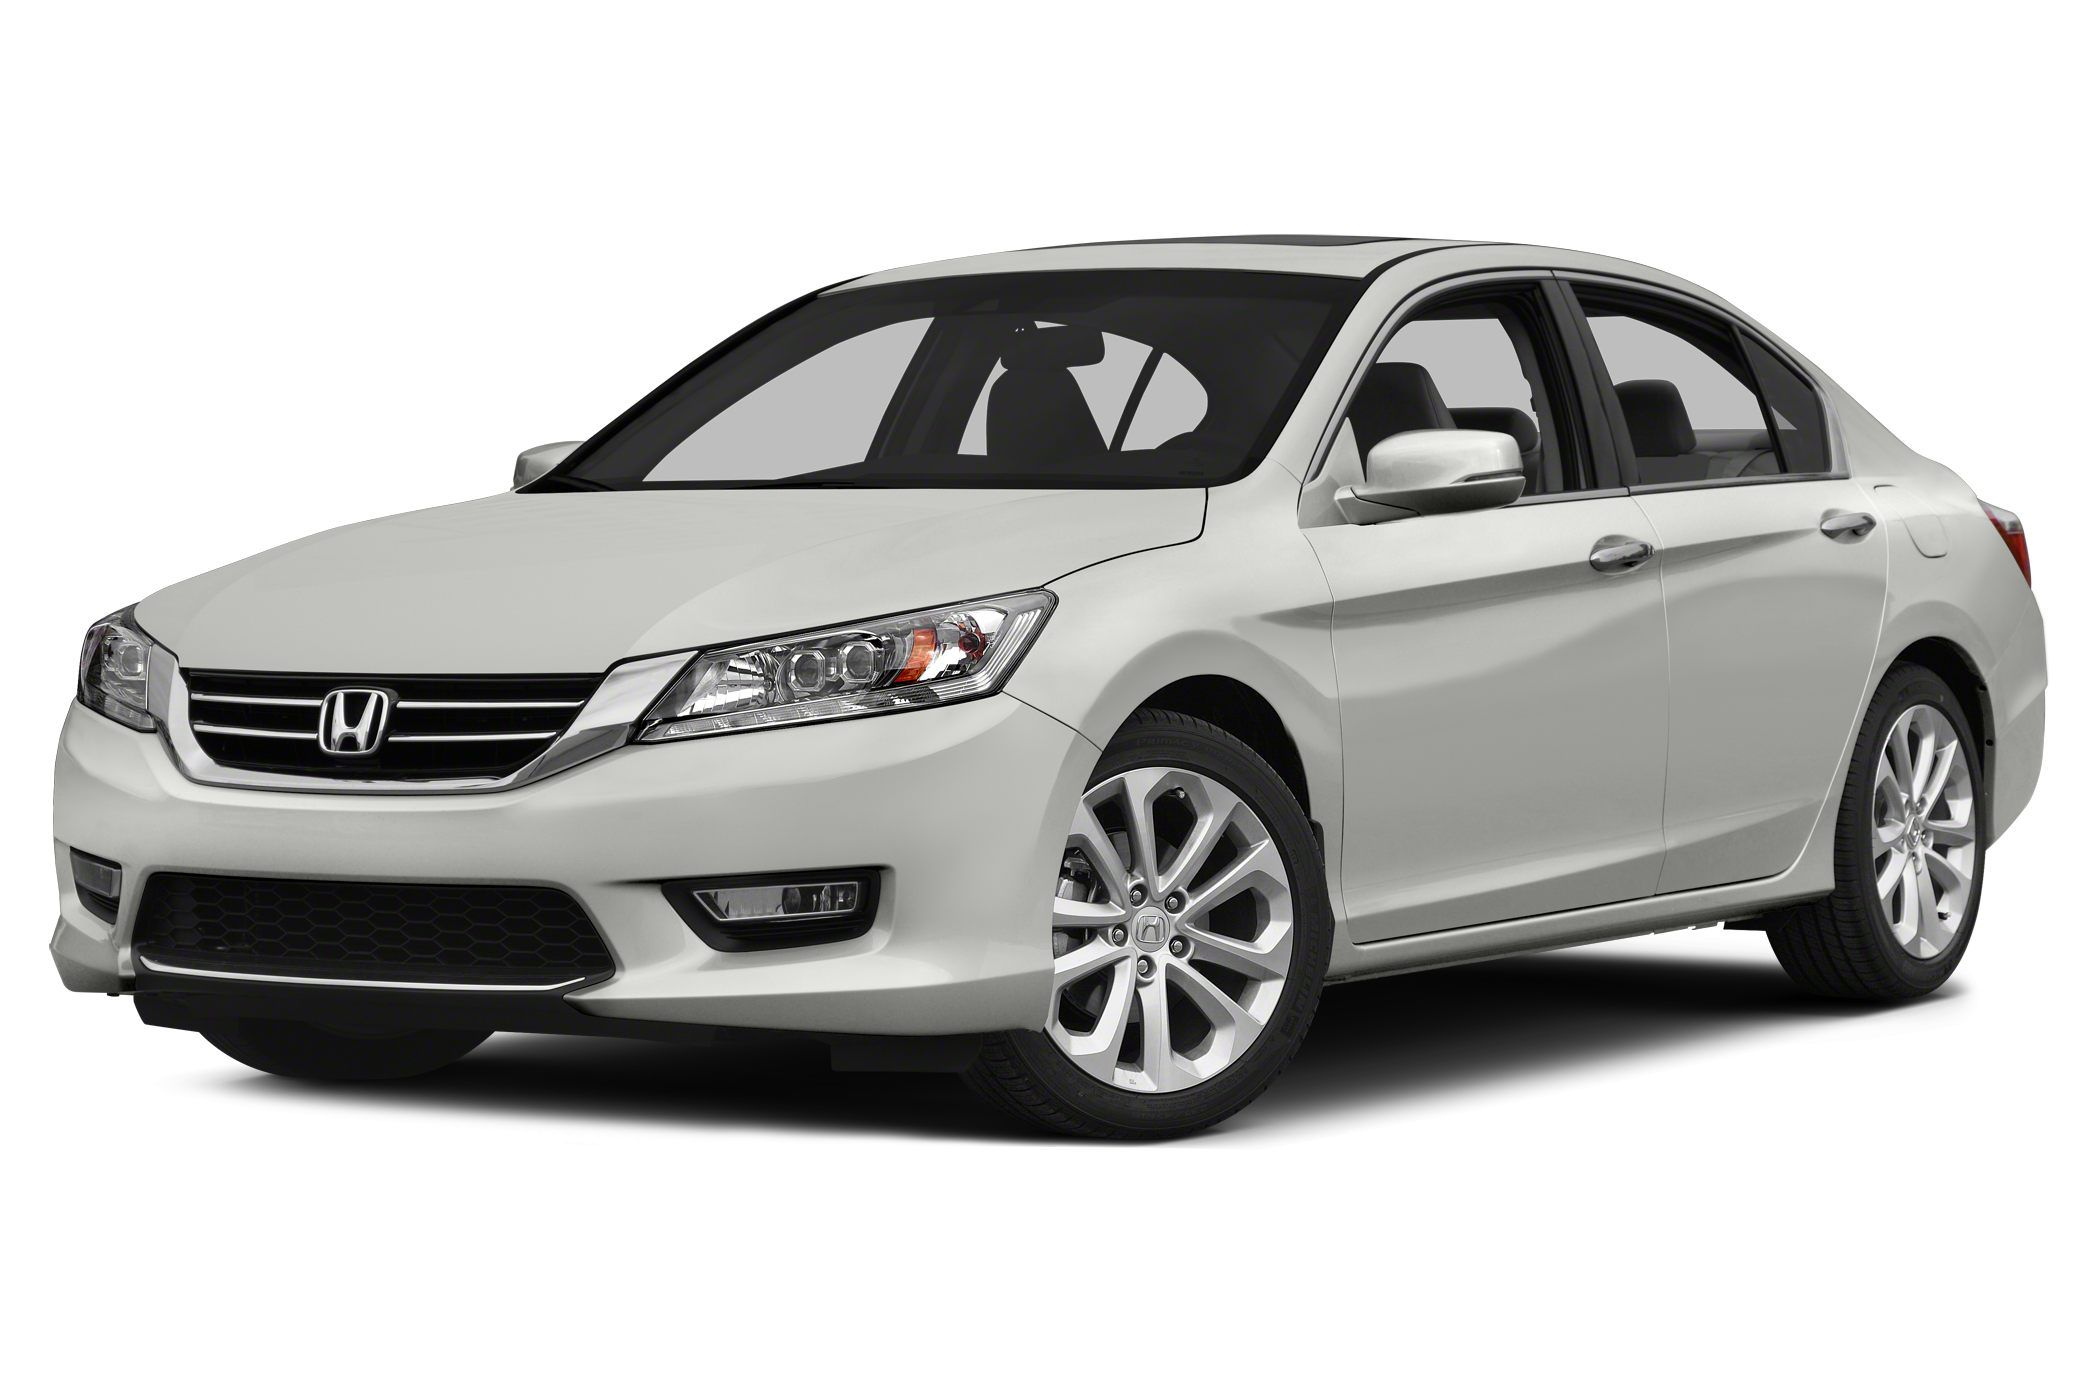 2015 honda accord Front Angle High Definition Wallpaper | WOW ...